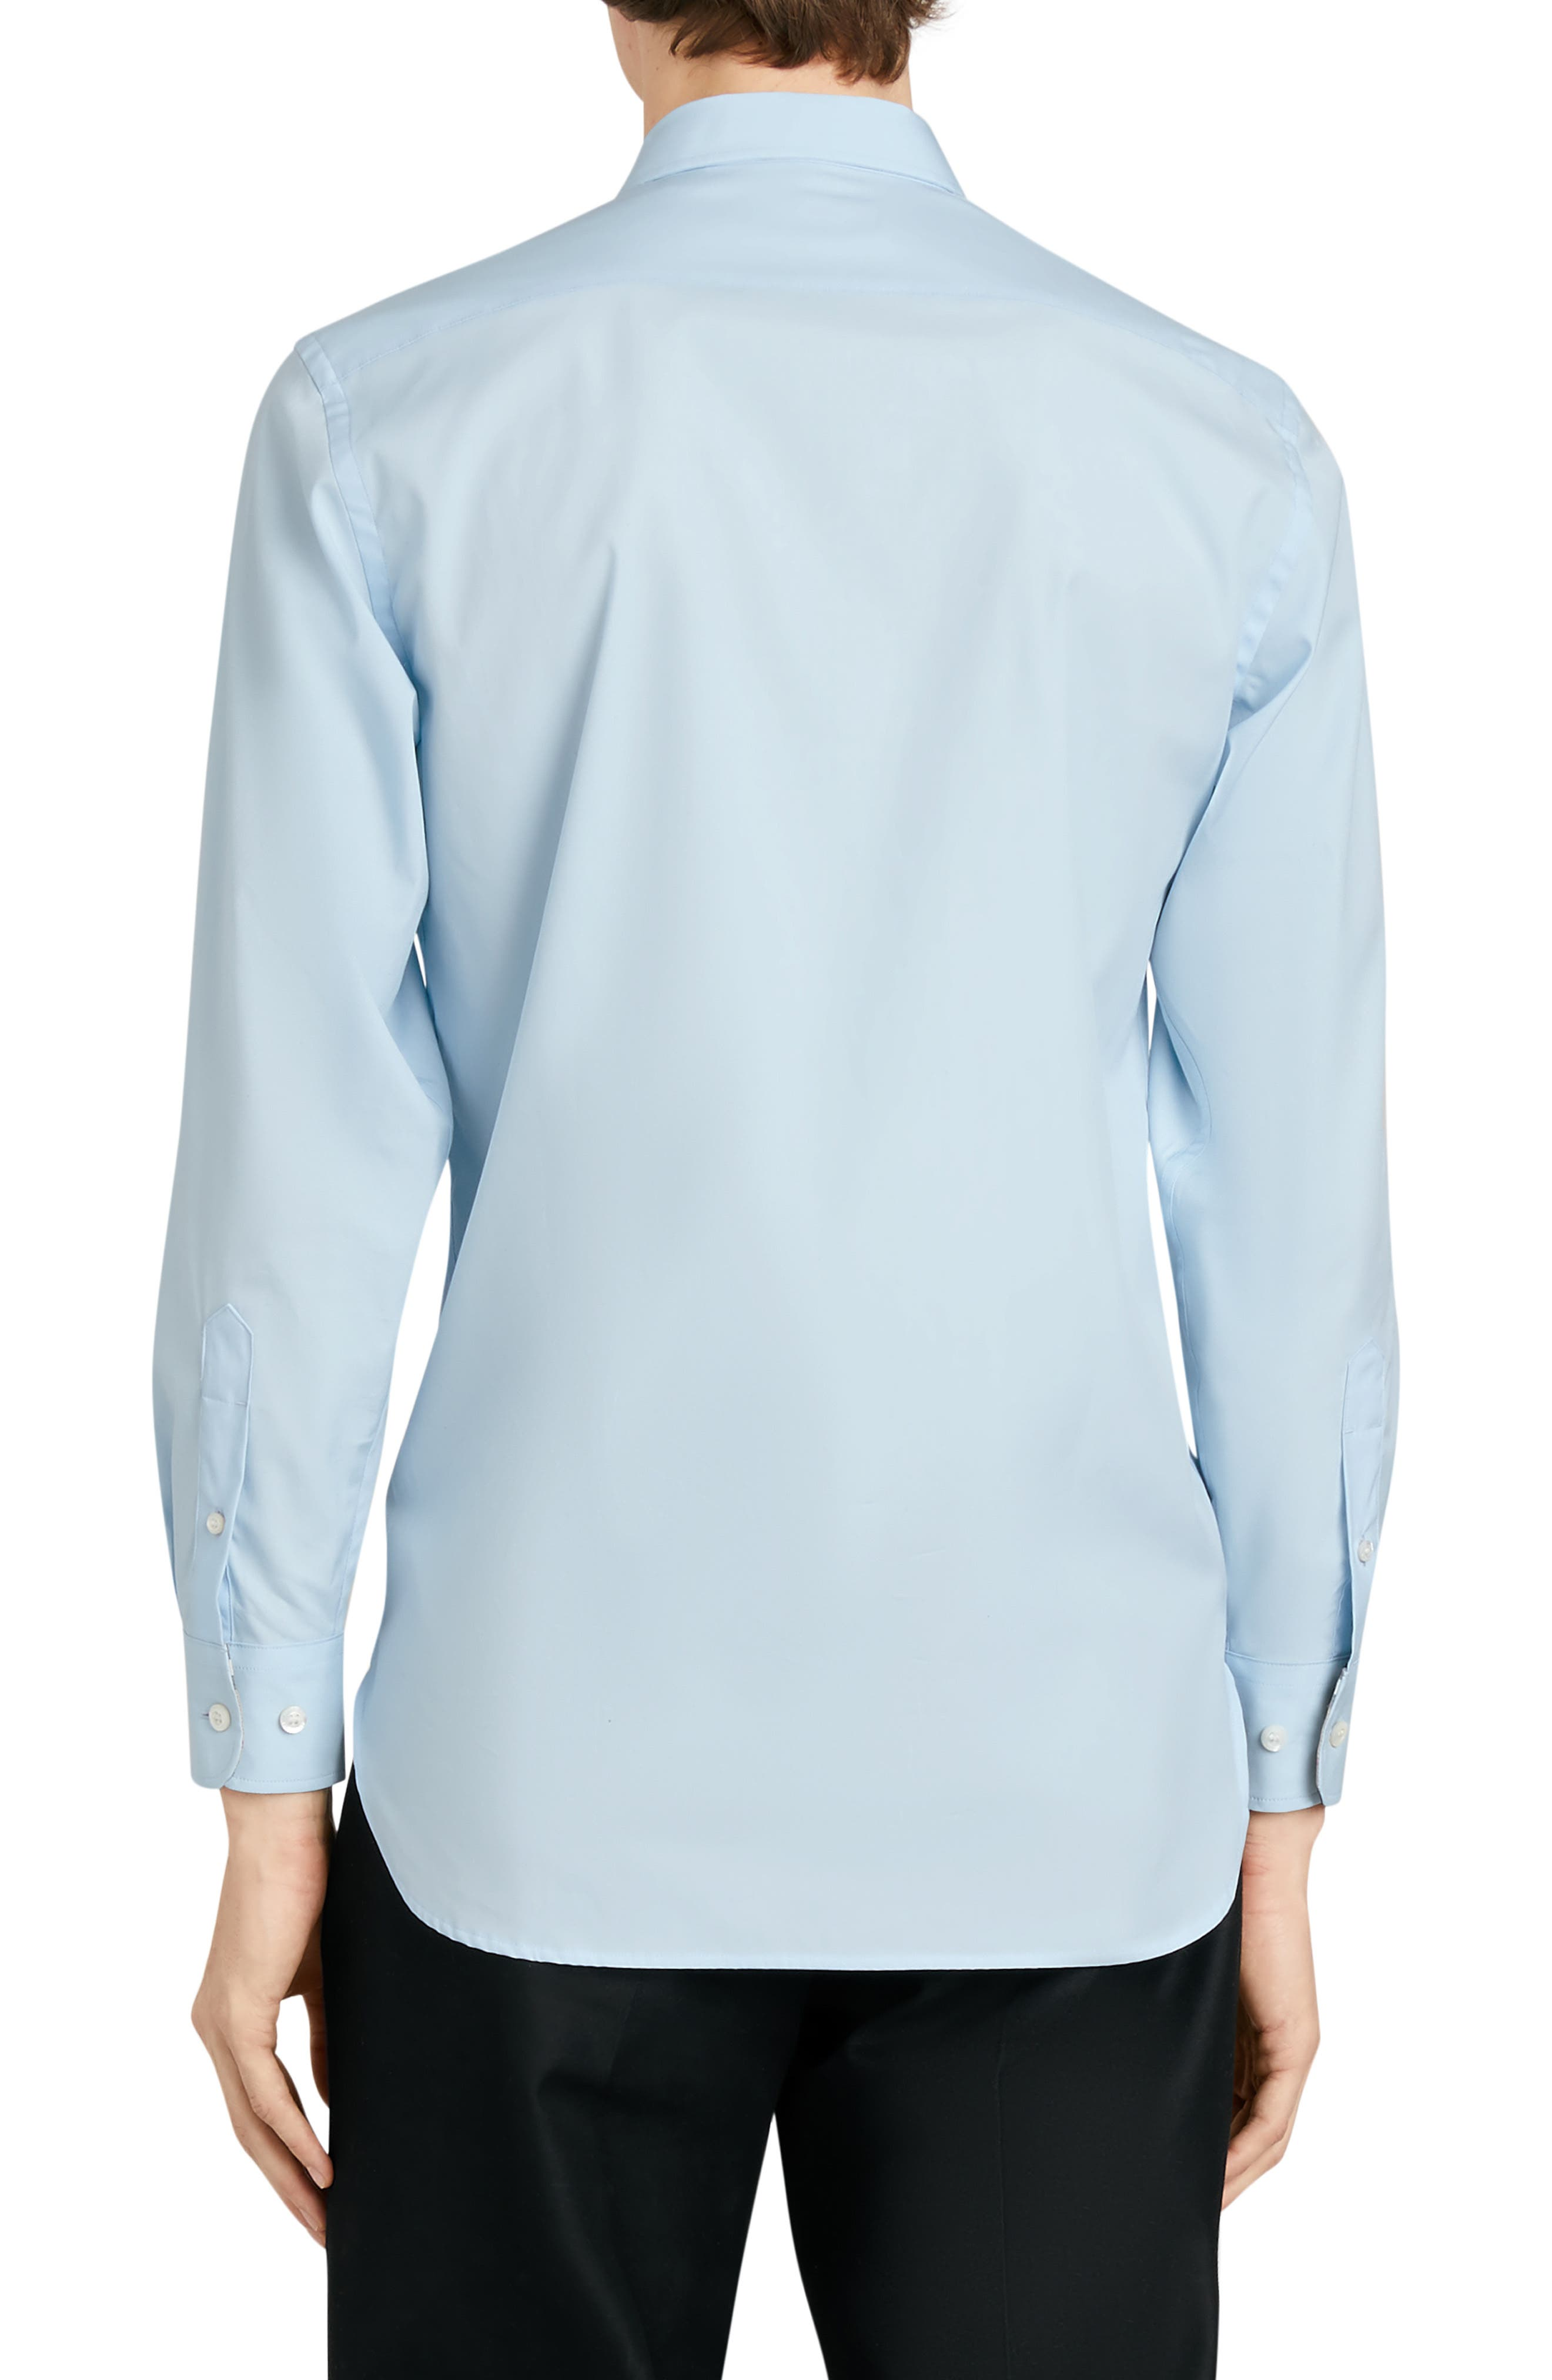 BURBERRY,                             William Stretch Poplin Sport Shirt,                             Alternate thumbnail 3, color,                             PALE BLUE